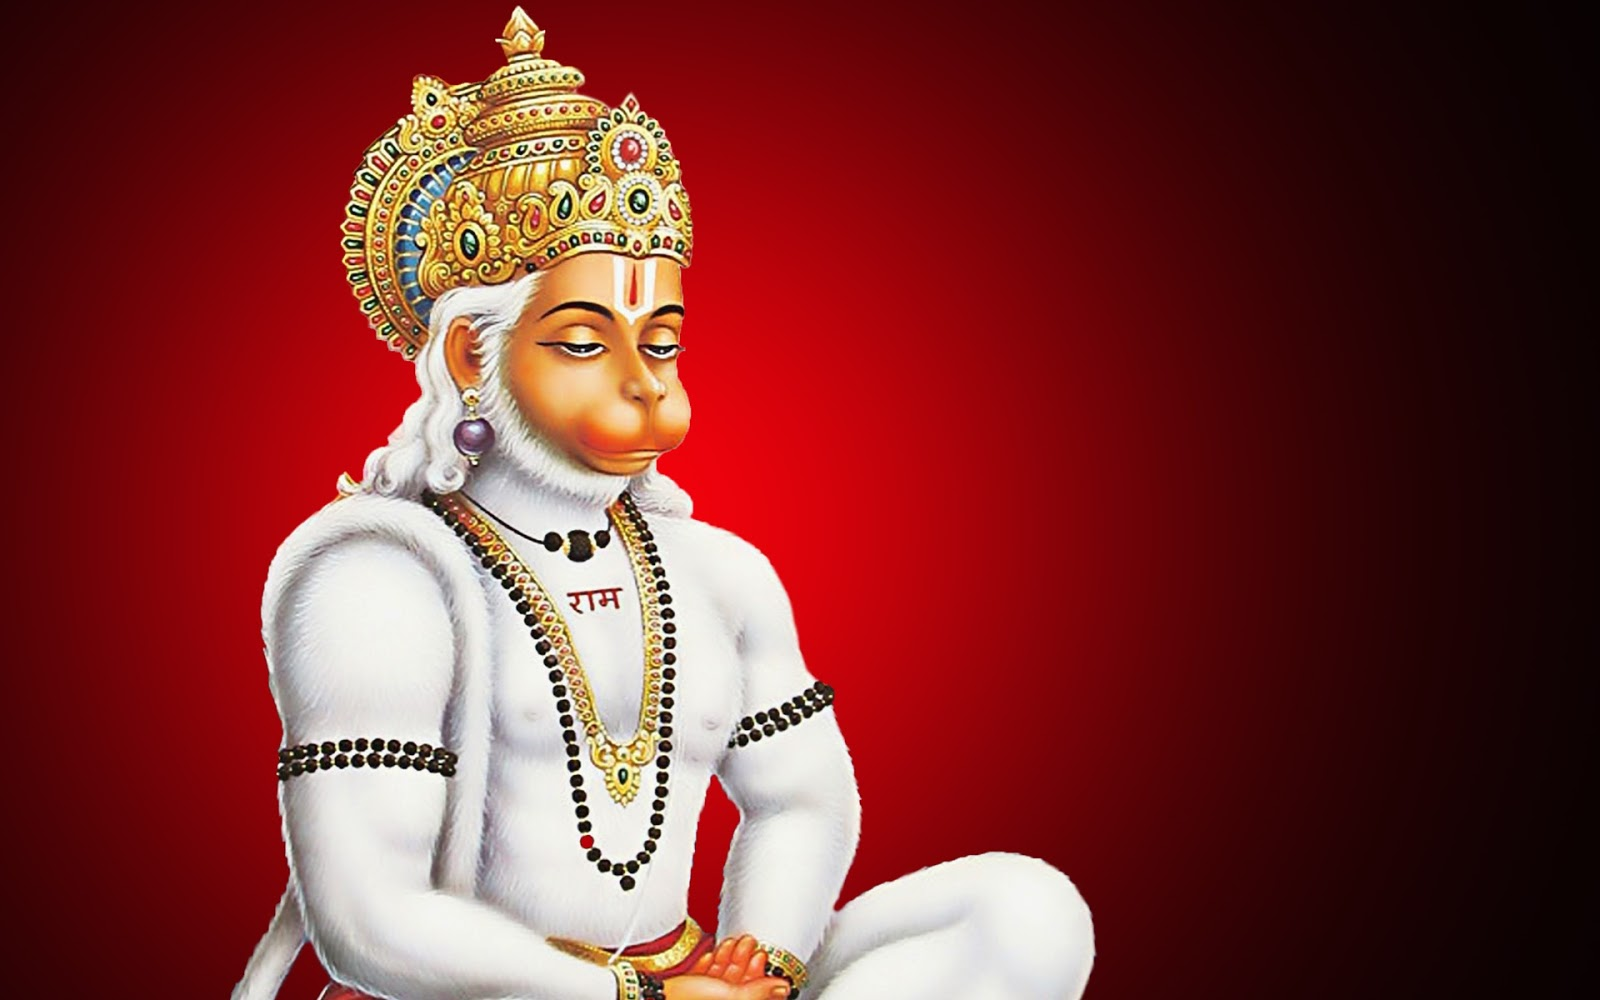 Hanuman Images, Photos, Pictures and wallpapers 2016 | Lord Hanuman Photos Collection ...